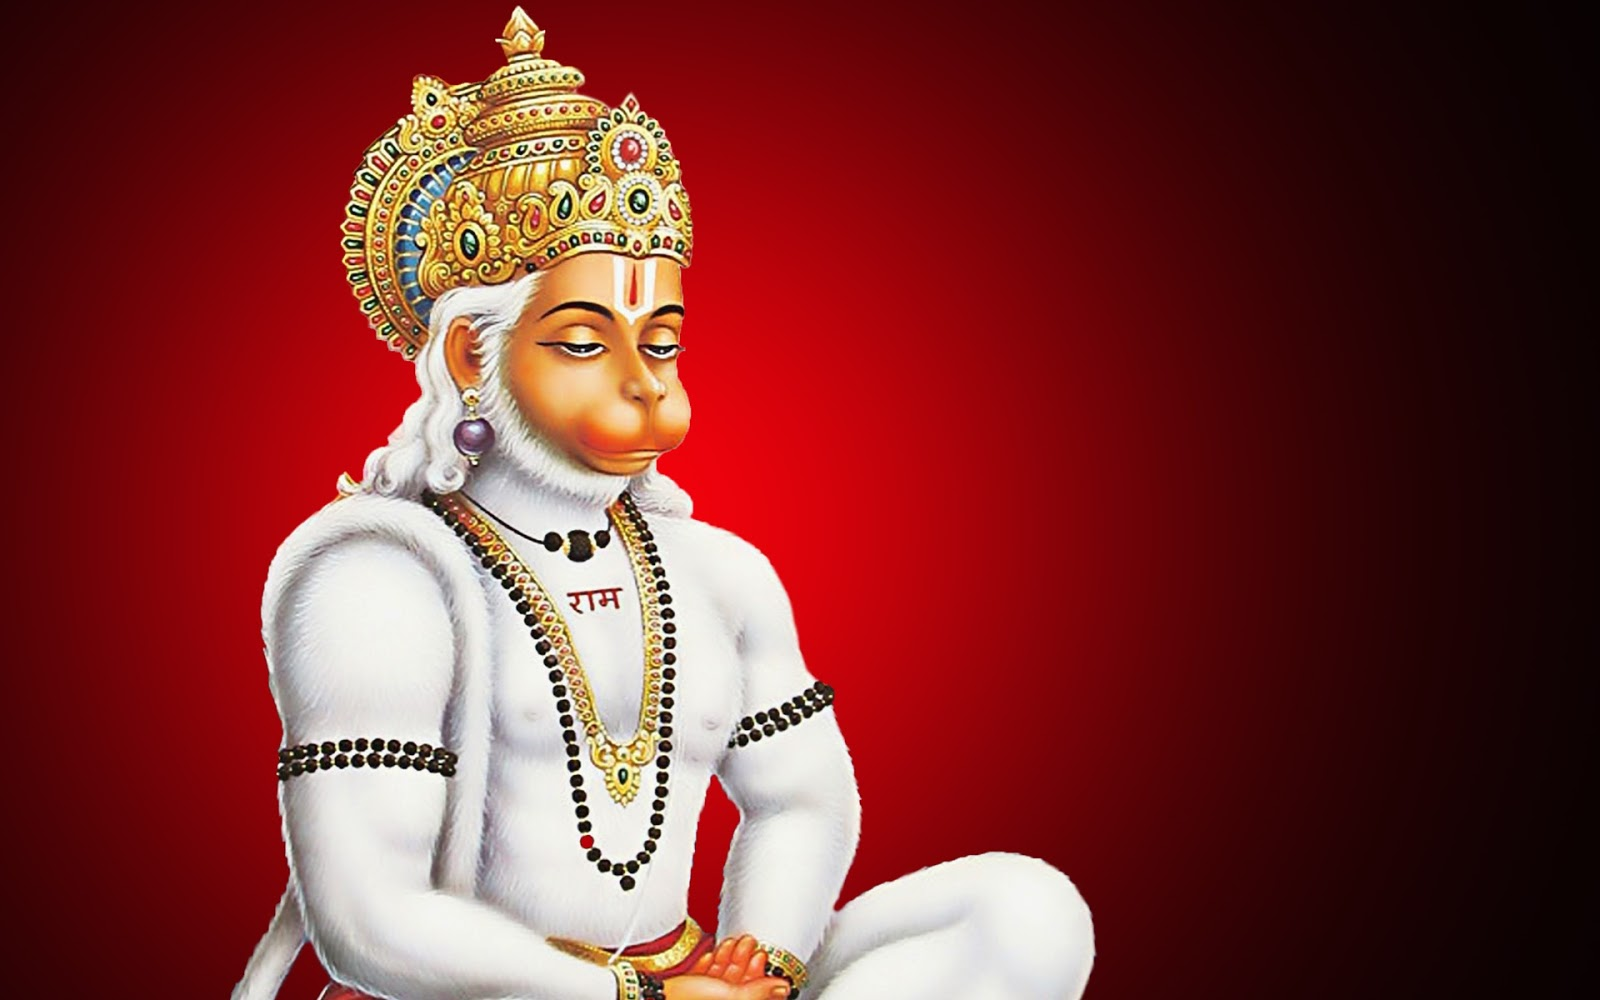 Hanuman Images, Photos, Pictures and wallpapers 2016 | Lord Hanuman Photos Collection ...